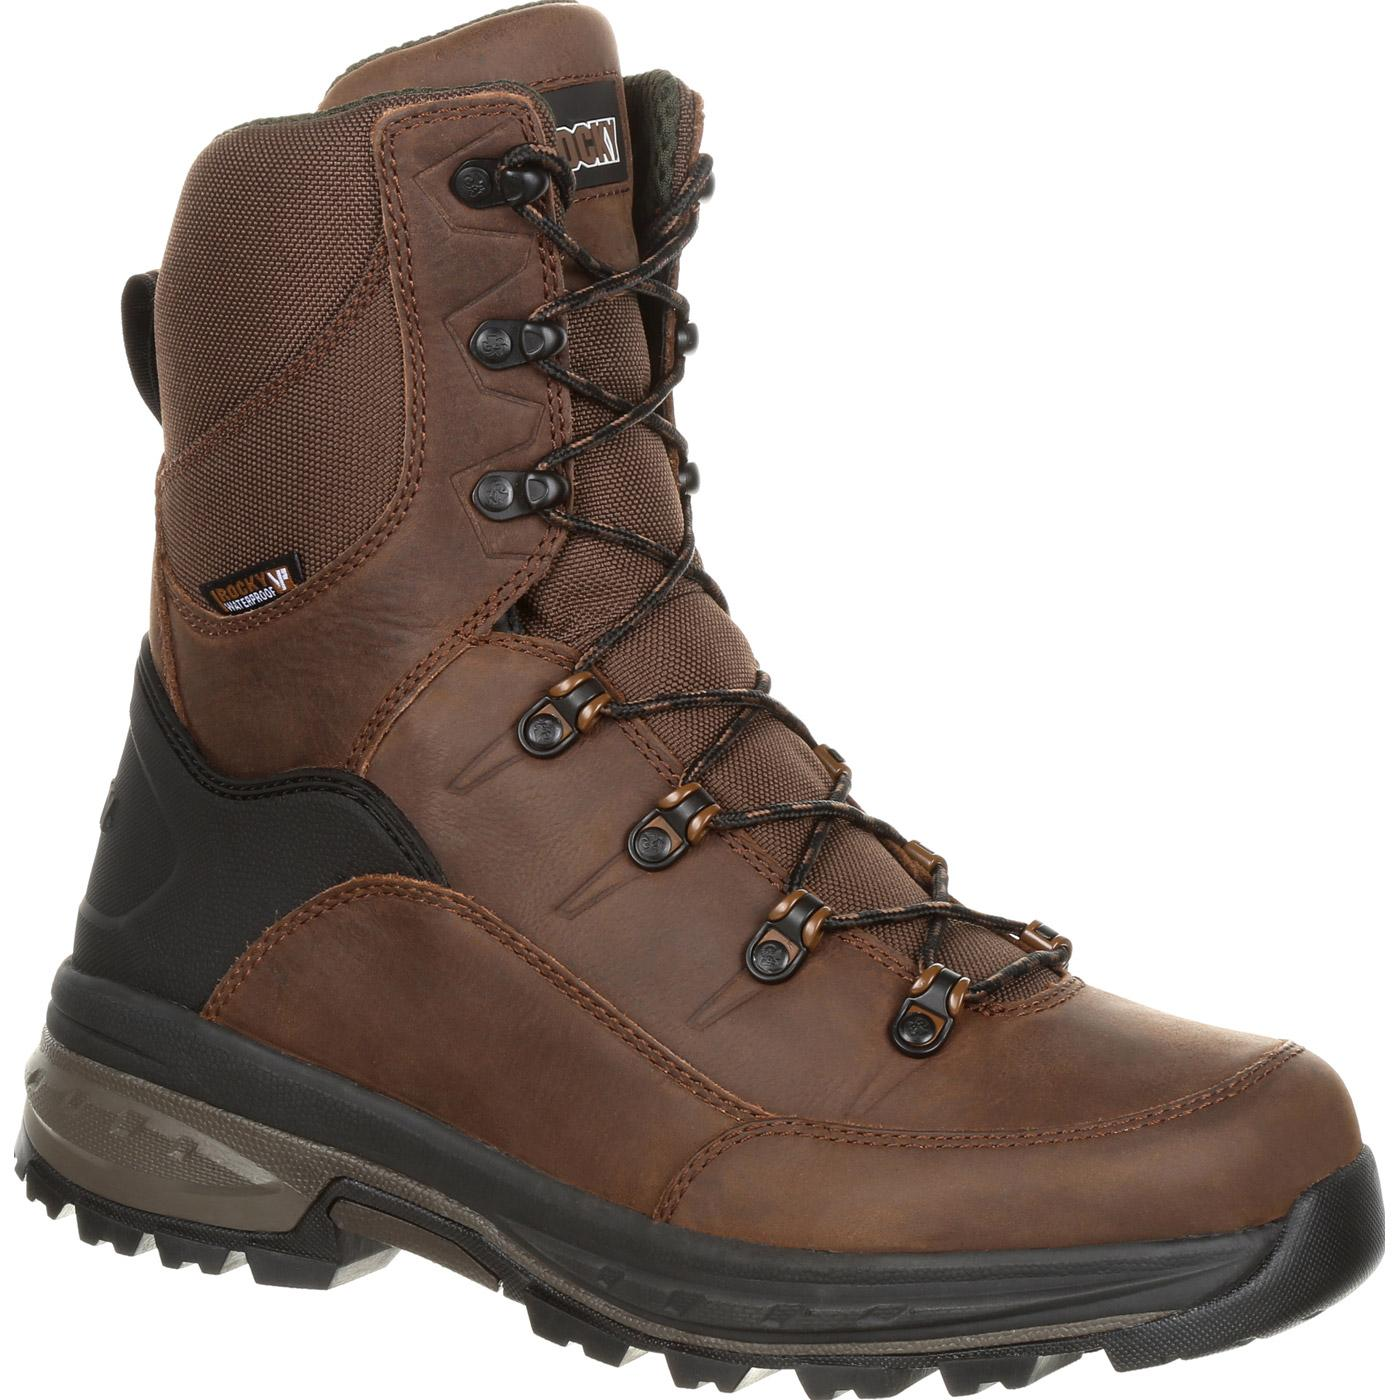 7206999ee1 Rocky Grizzly Waterproof 200g Insulated Outdoor Boot